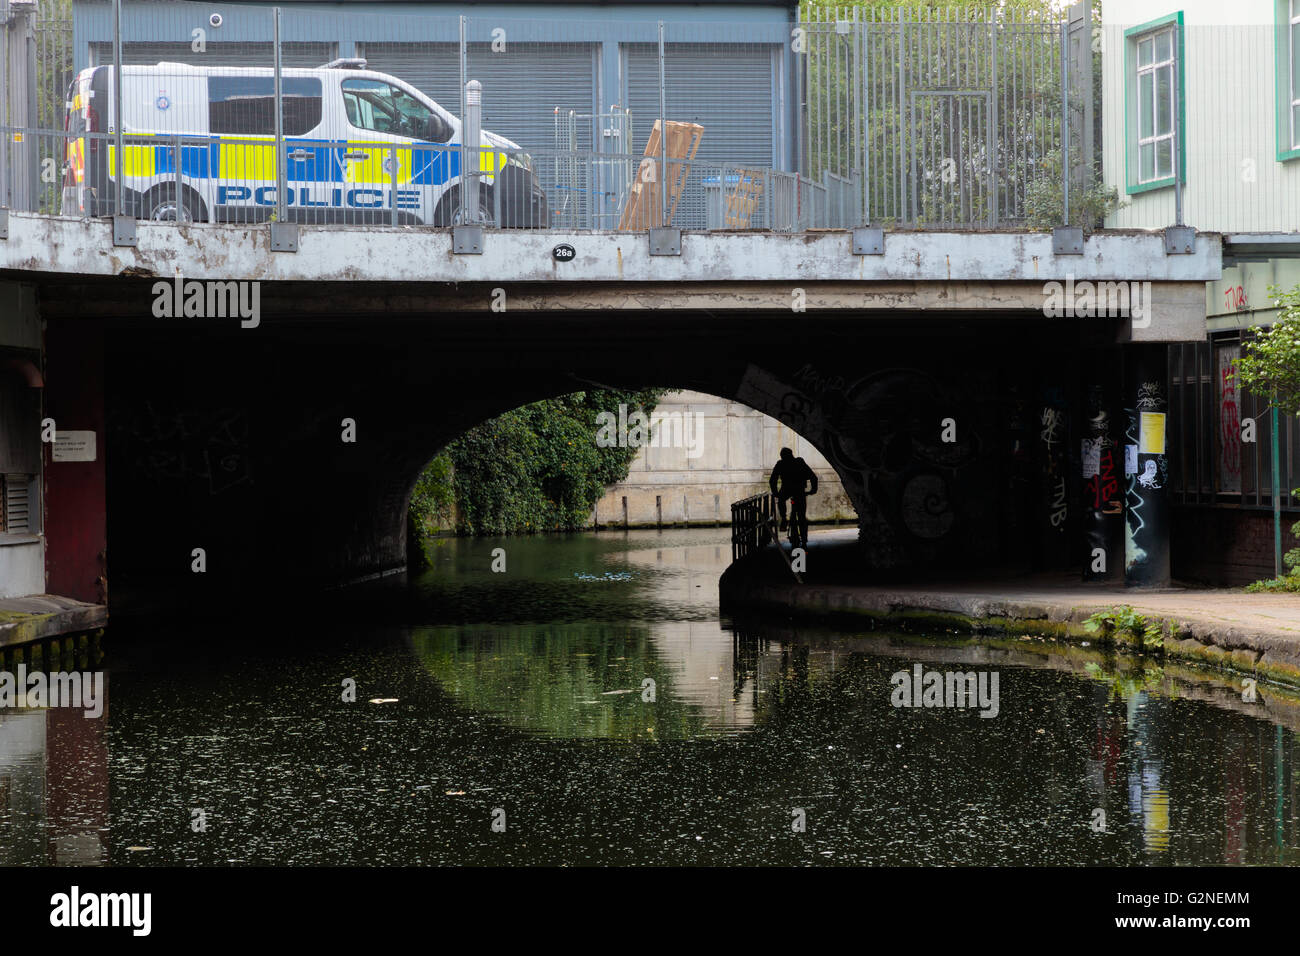 Street security metaphor: UK police vehicle and an unidentified cyclist passing under the bridge on the canal bank - Stock Image